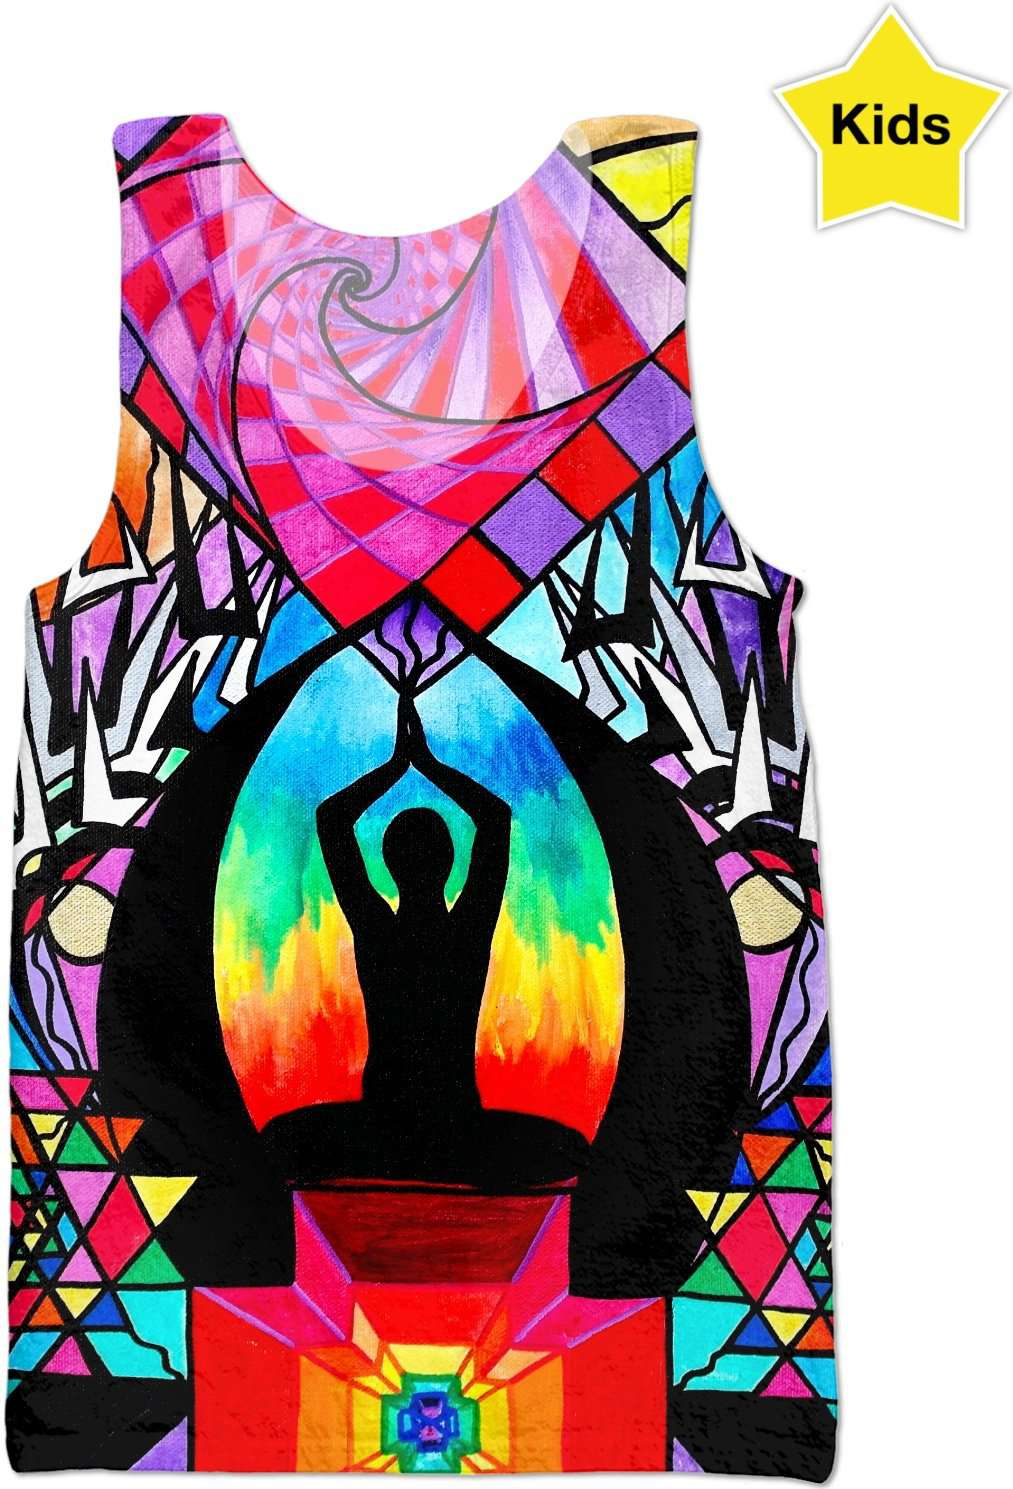 Meditation Aid - Kids Tank Top